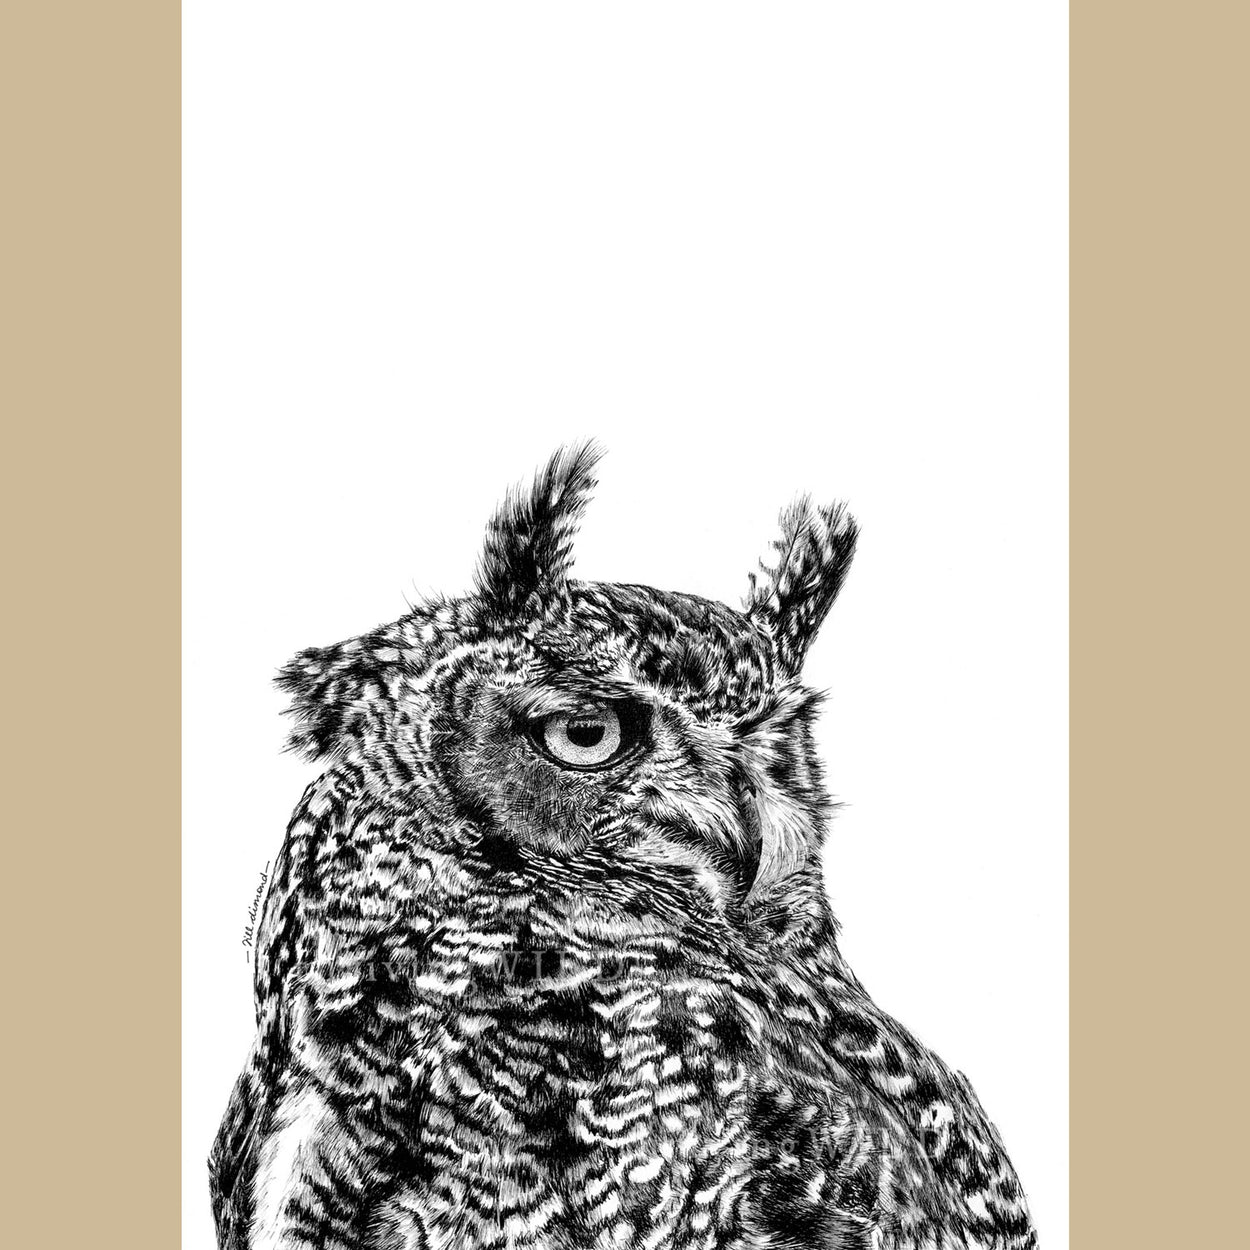 Eagle Owl Pen Drawing Bird of Prey - The Thriving Wild